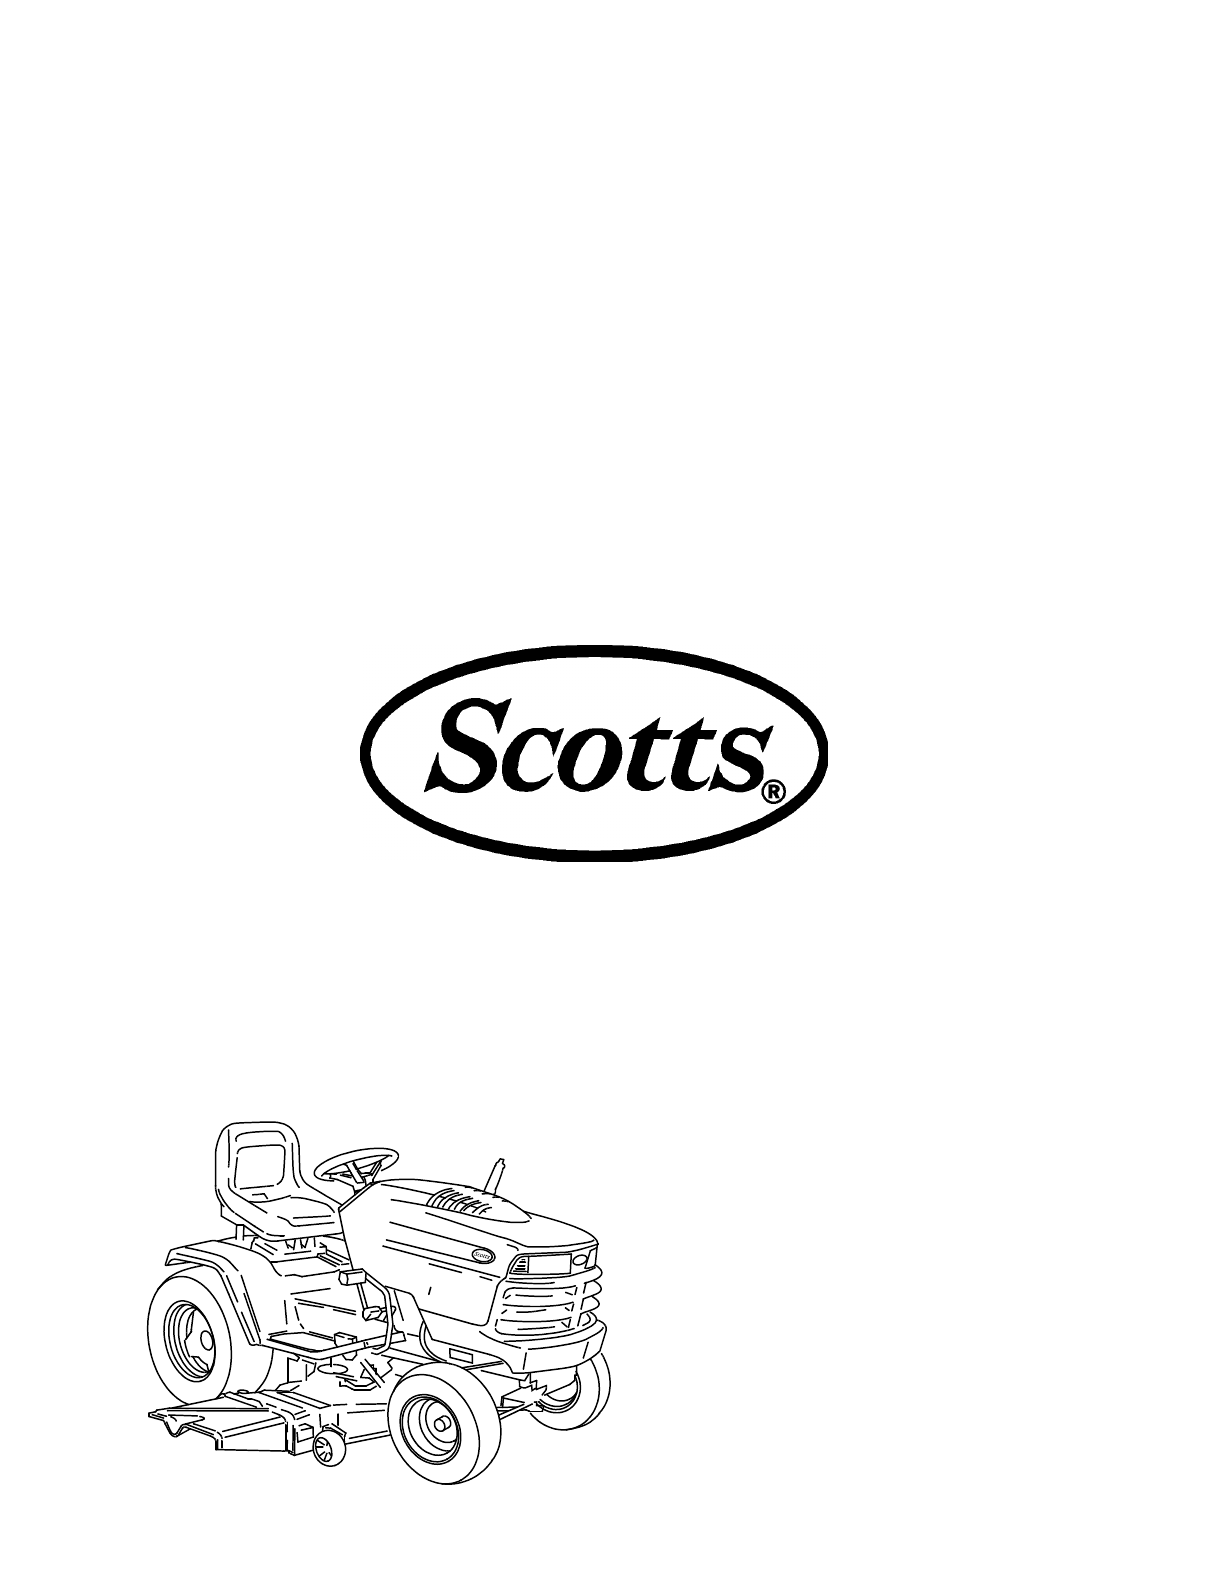 74d6465d 604f df44 71f6 2ff6ec9f391a bg1 scotts lawn mower s2048, s2554 user guide manualsonline com scotts s2048 wiring diagram at eliteediting.co